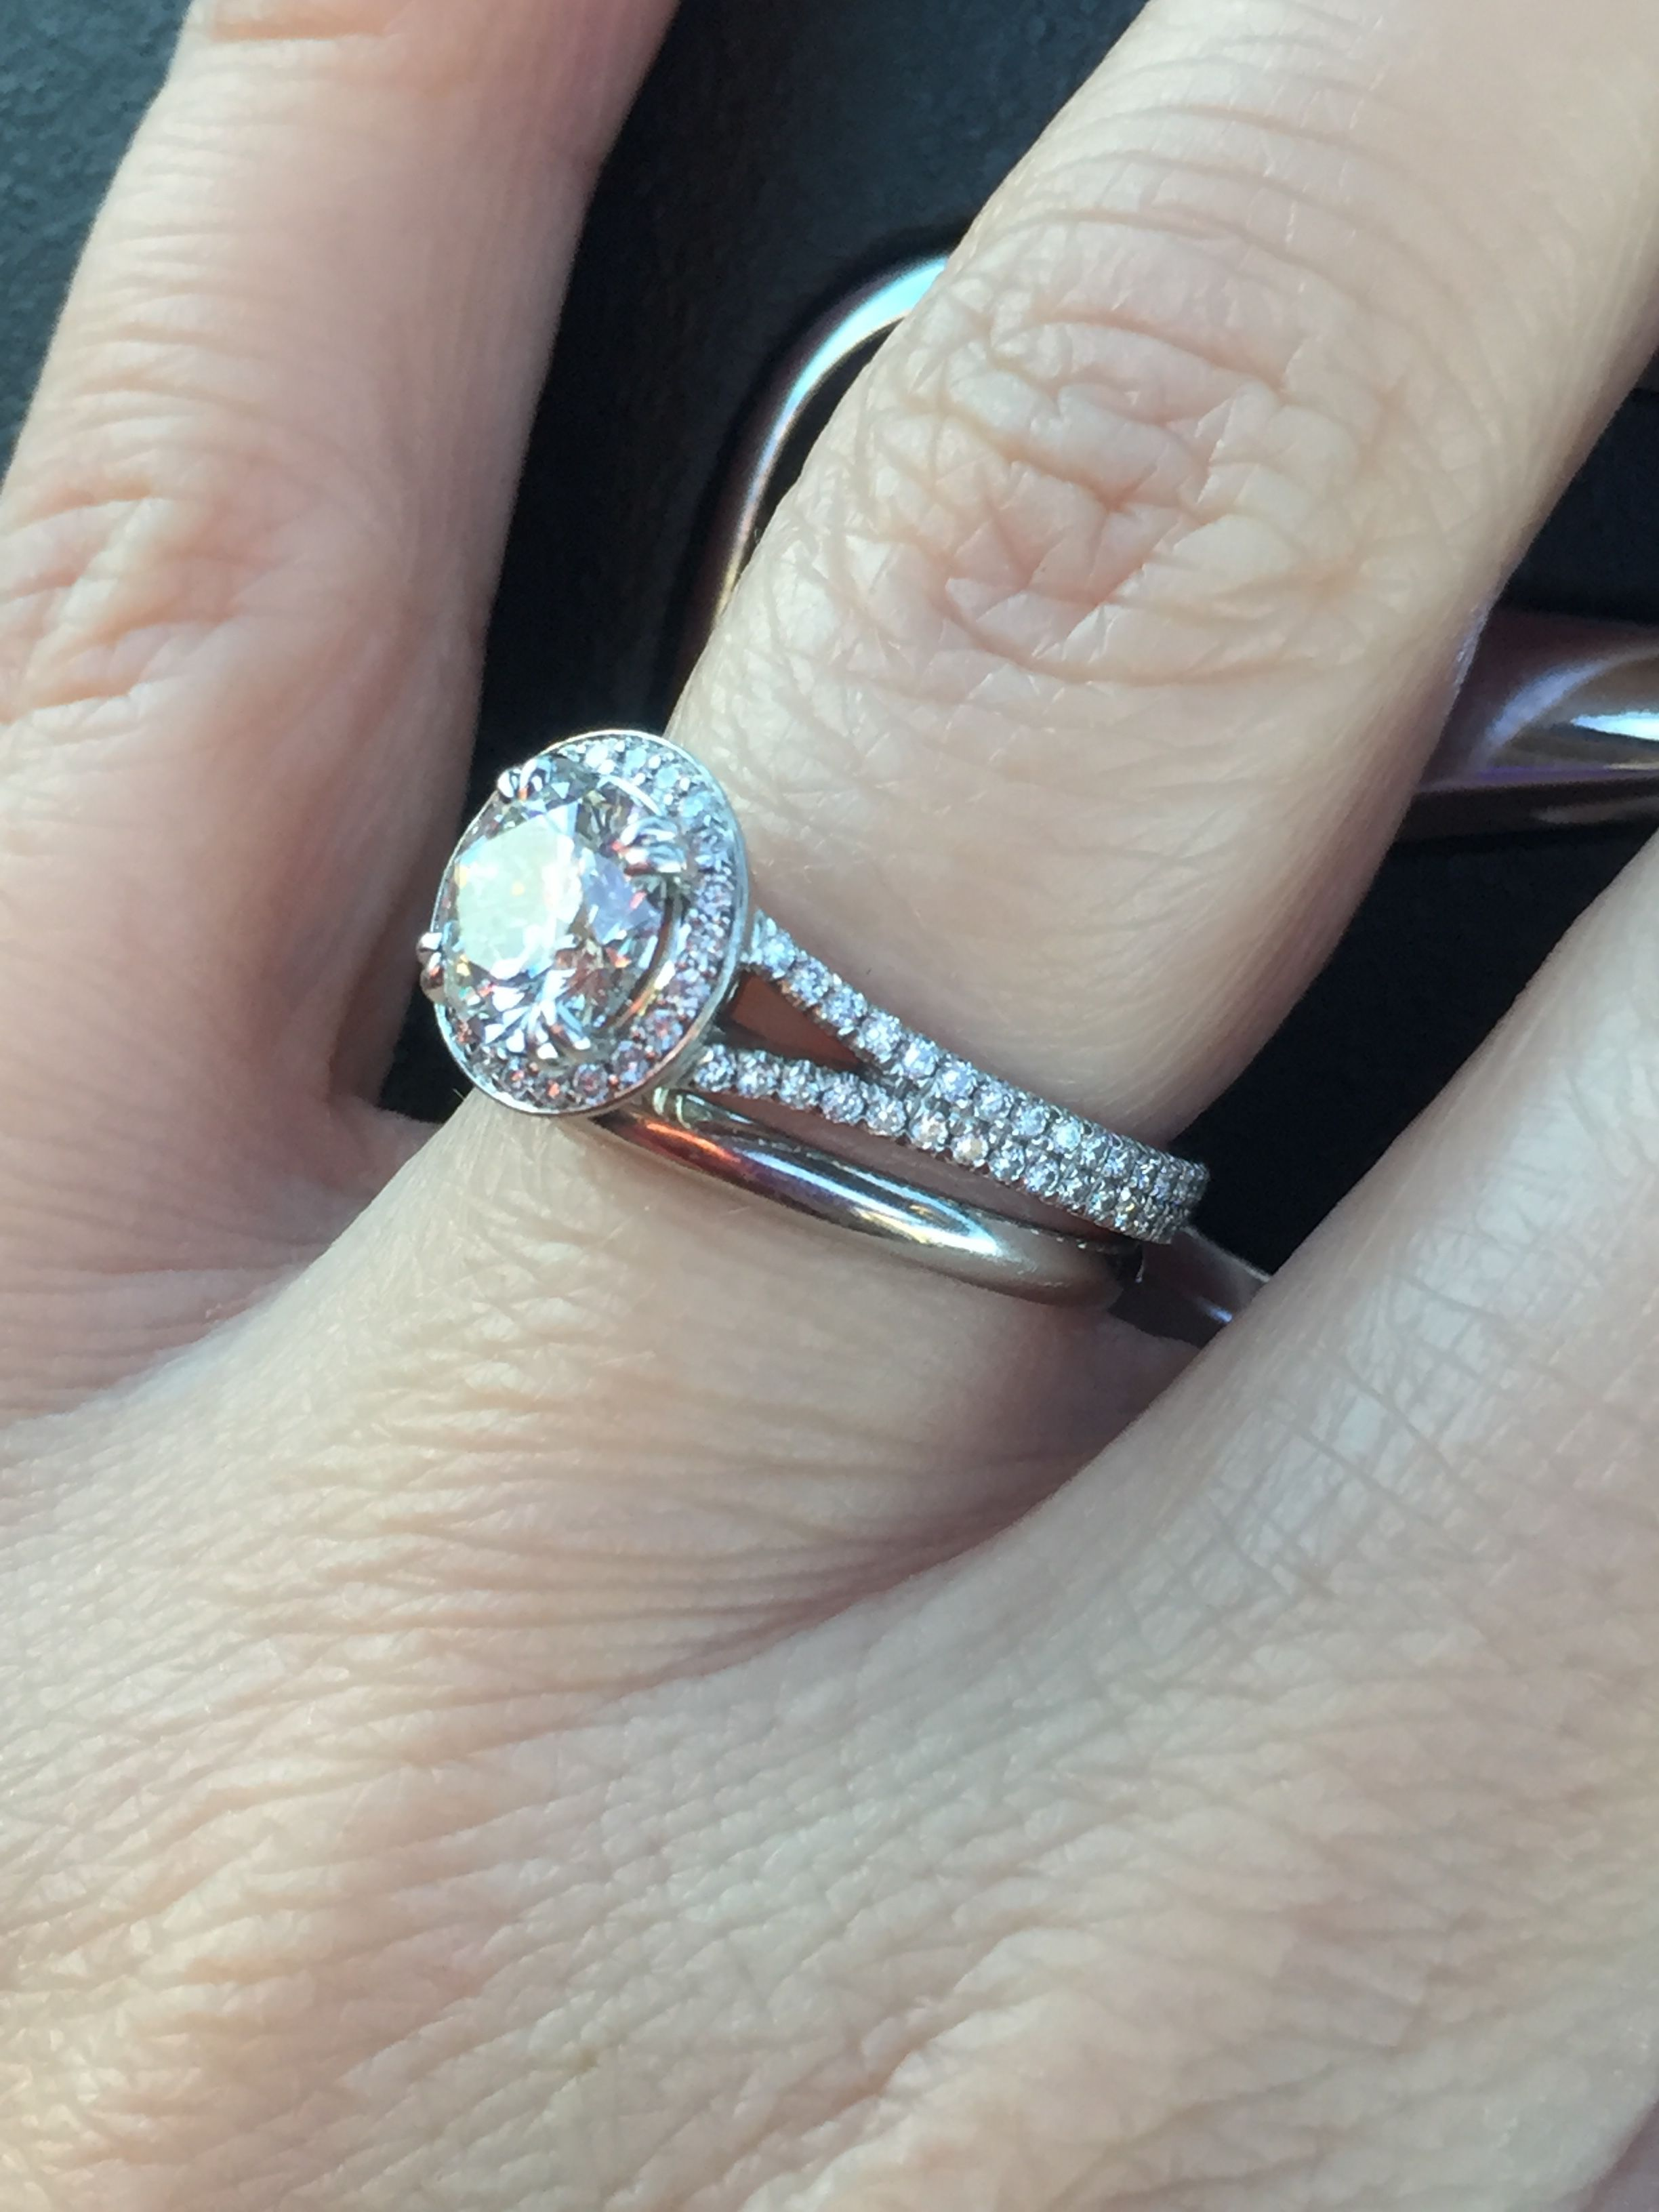 Show Me Your Plain Wedding Band With Your Engagement Ring